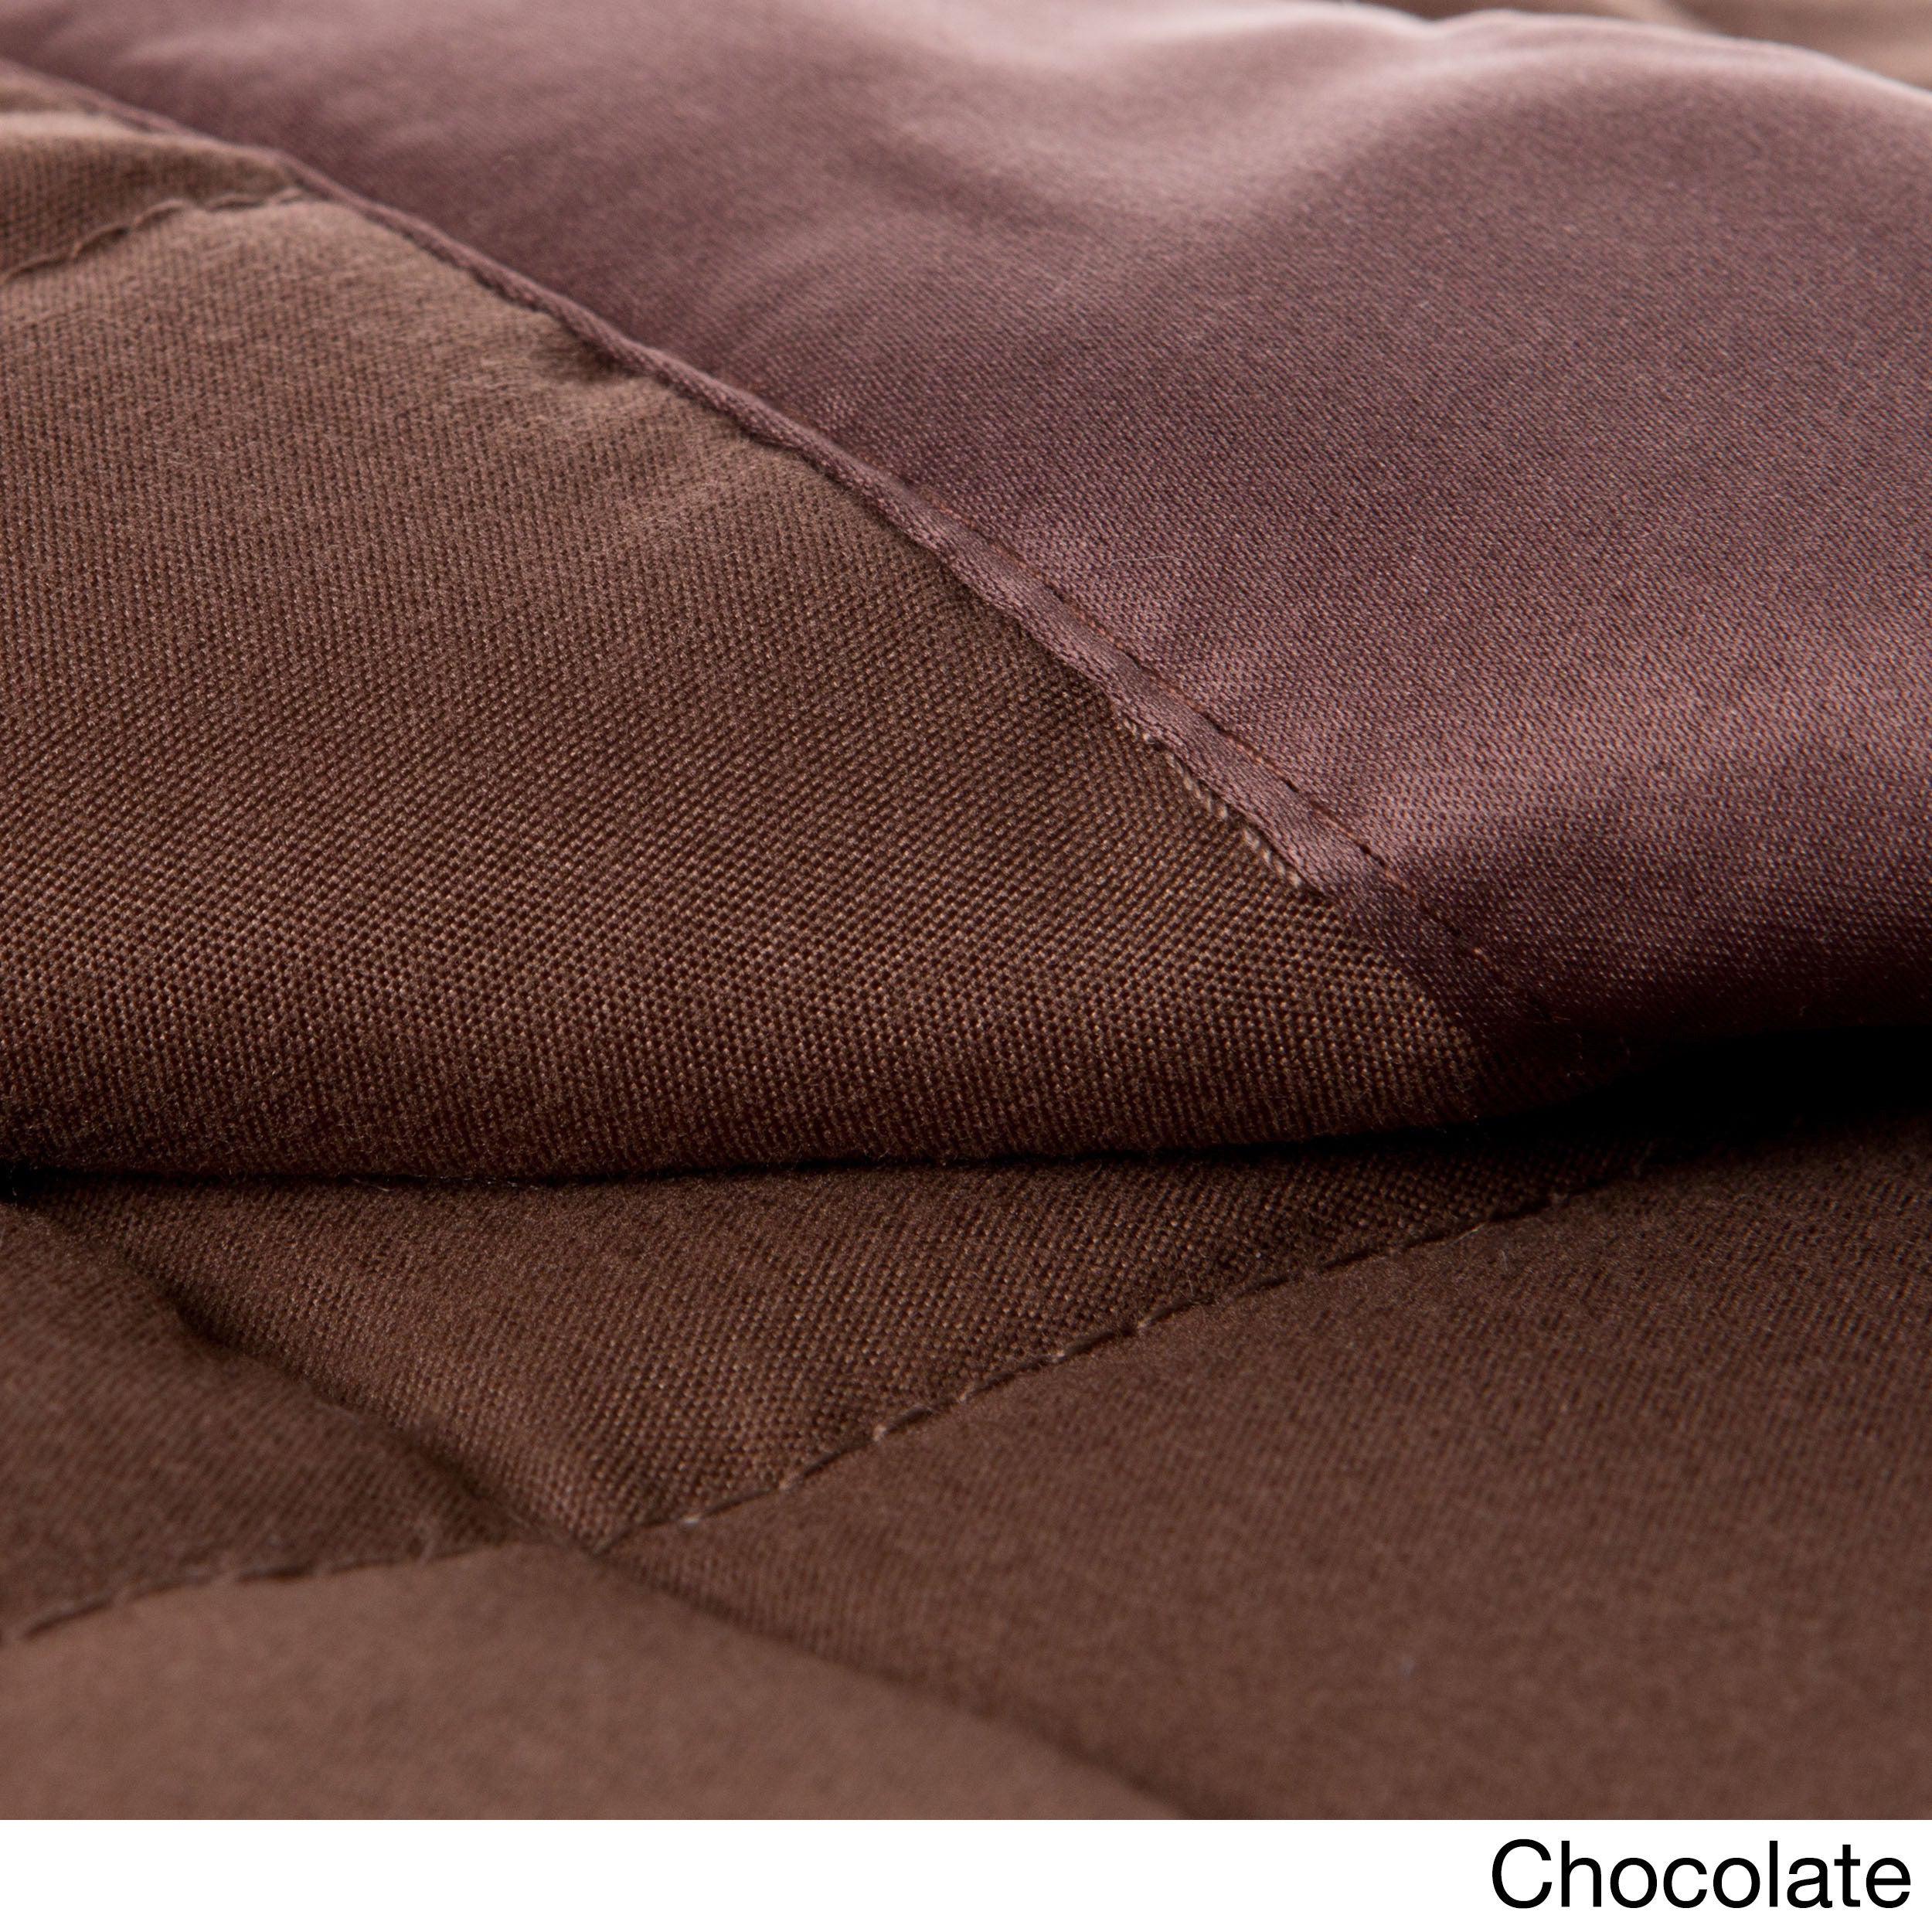 Shop Solid Colored Microfiber Down Alternative Blanket Free Digital Burgundy Canvas Chocolate Leather Shipping On Orders Over 45 524253